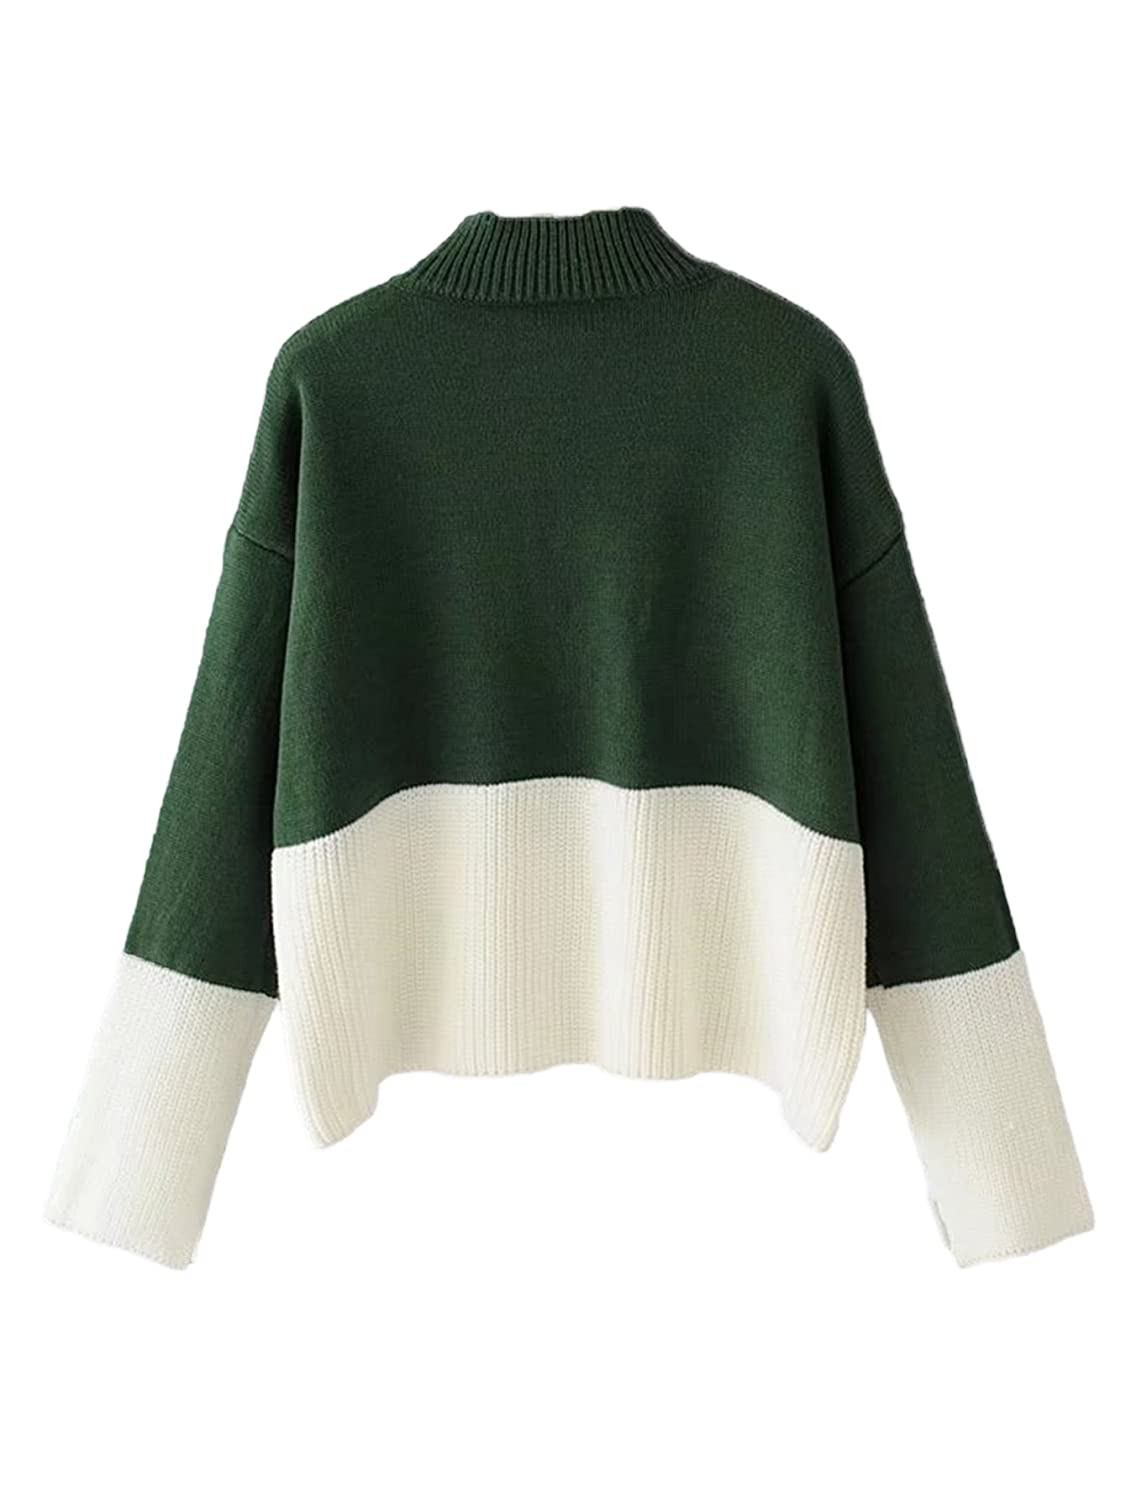 0756c9536e ROWME Women s Color Block Two Tone Ribbed Drop Shoulder Long Sleeve Knit  Pullover Sweater at Amazon Women s Clothing store